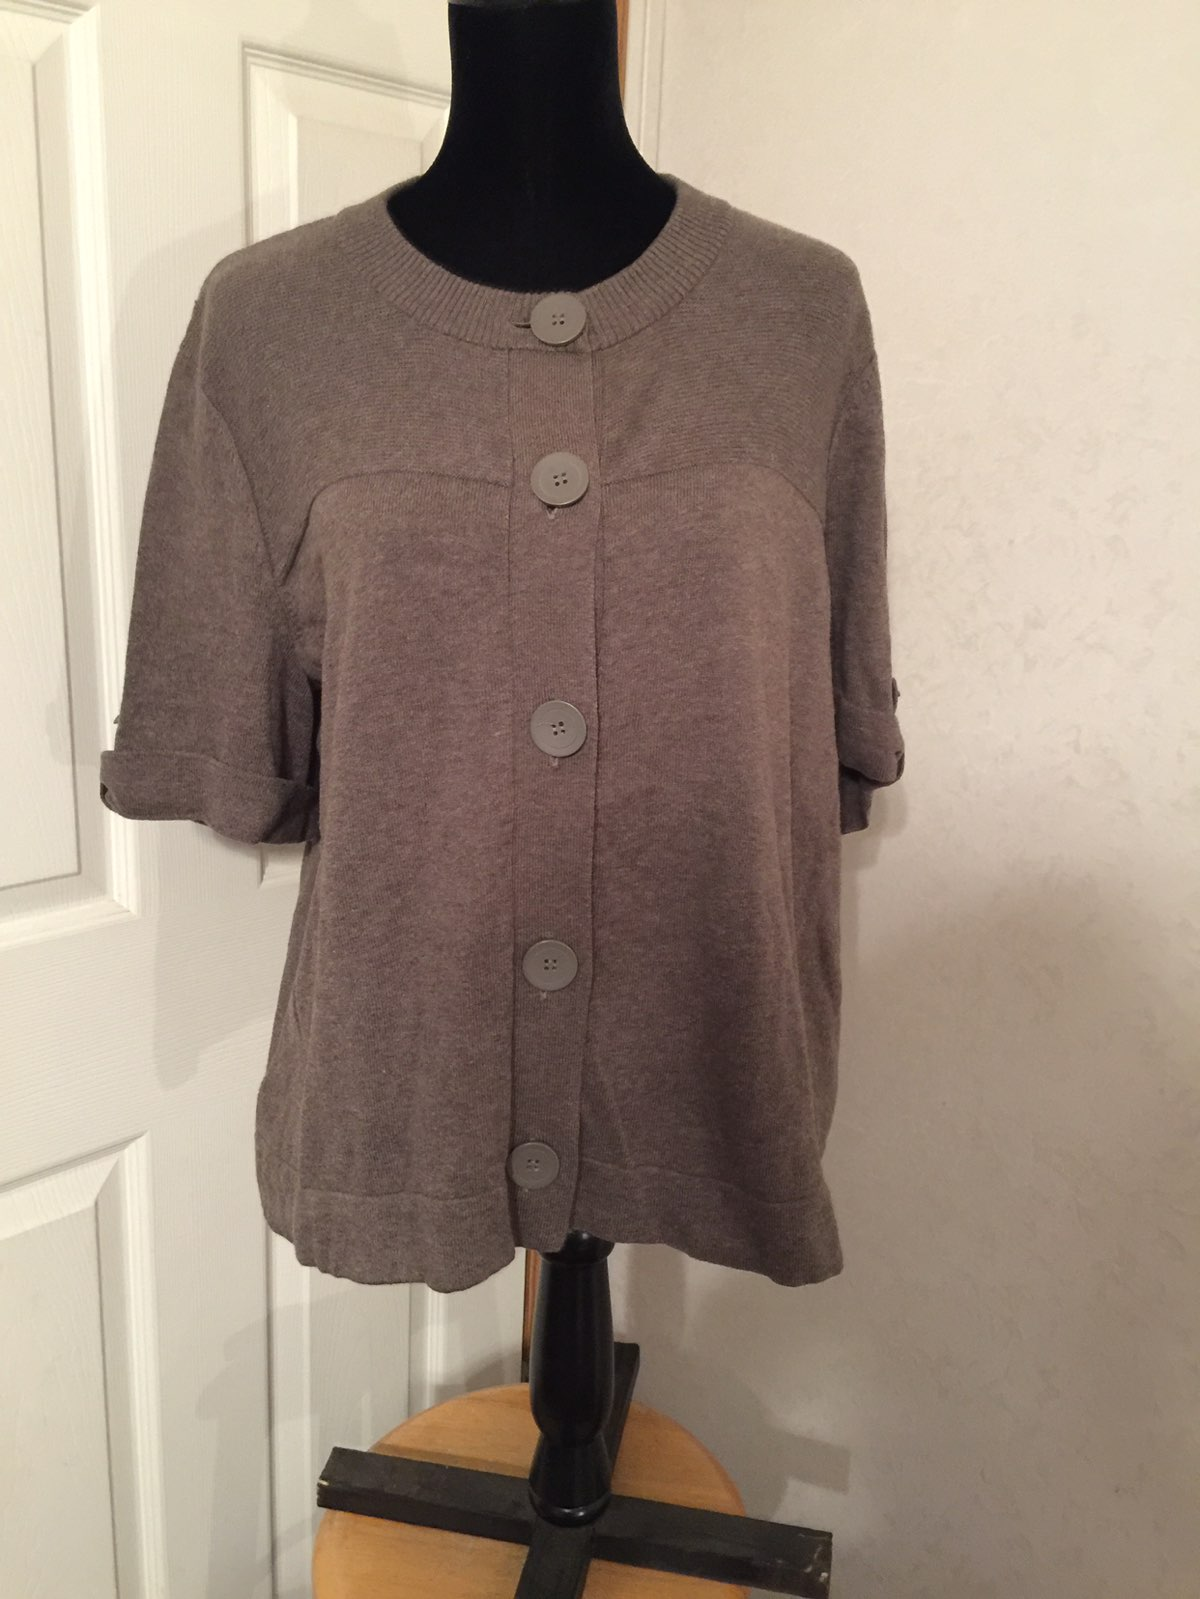 Axcess Brown Button Down Cardigan XL - Mercari: BUY & SELL THINGS ...